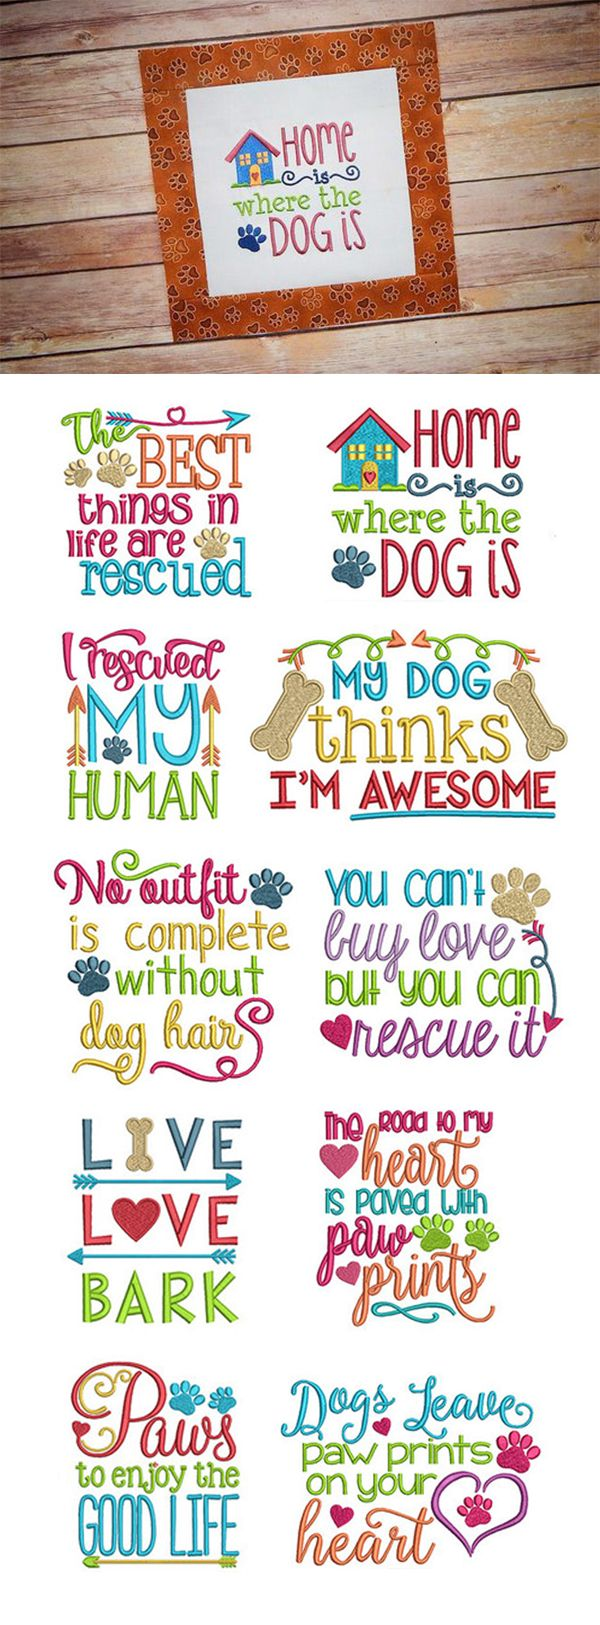 Our Dog Sayings Set 1 features 10 sayings for man's (or woman's) best friend! Each available in 4 sizes: 4x4, 5x7, 6x10 and 8x8